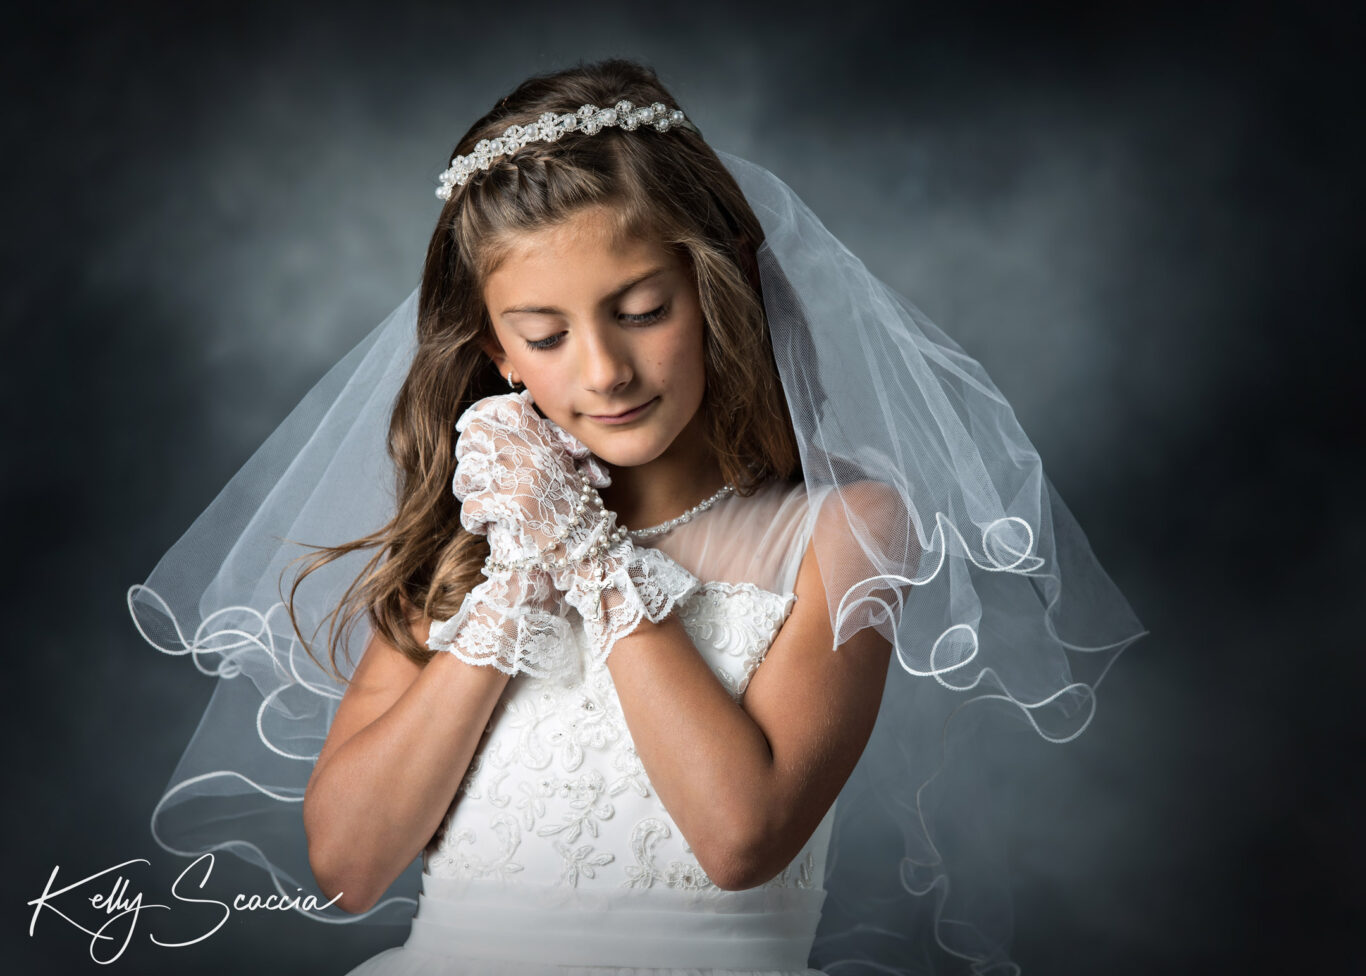 Studio First Holy communion girl portrait on a dark background wearing a white communion dress and veil hands under her chin eyes closed